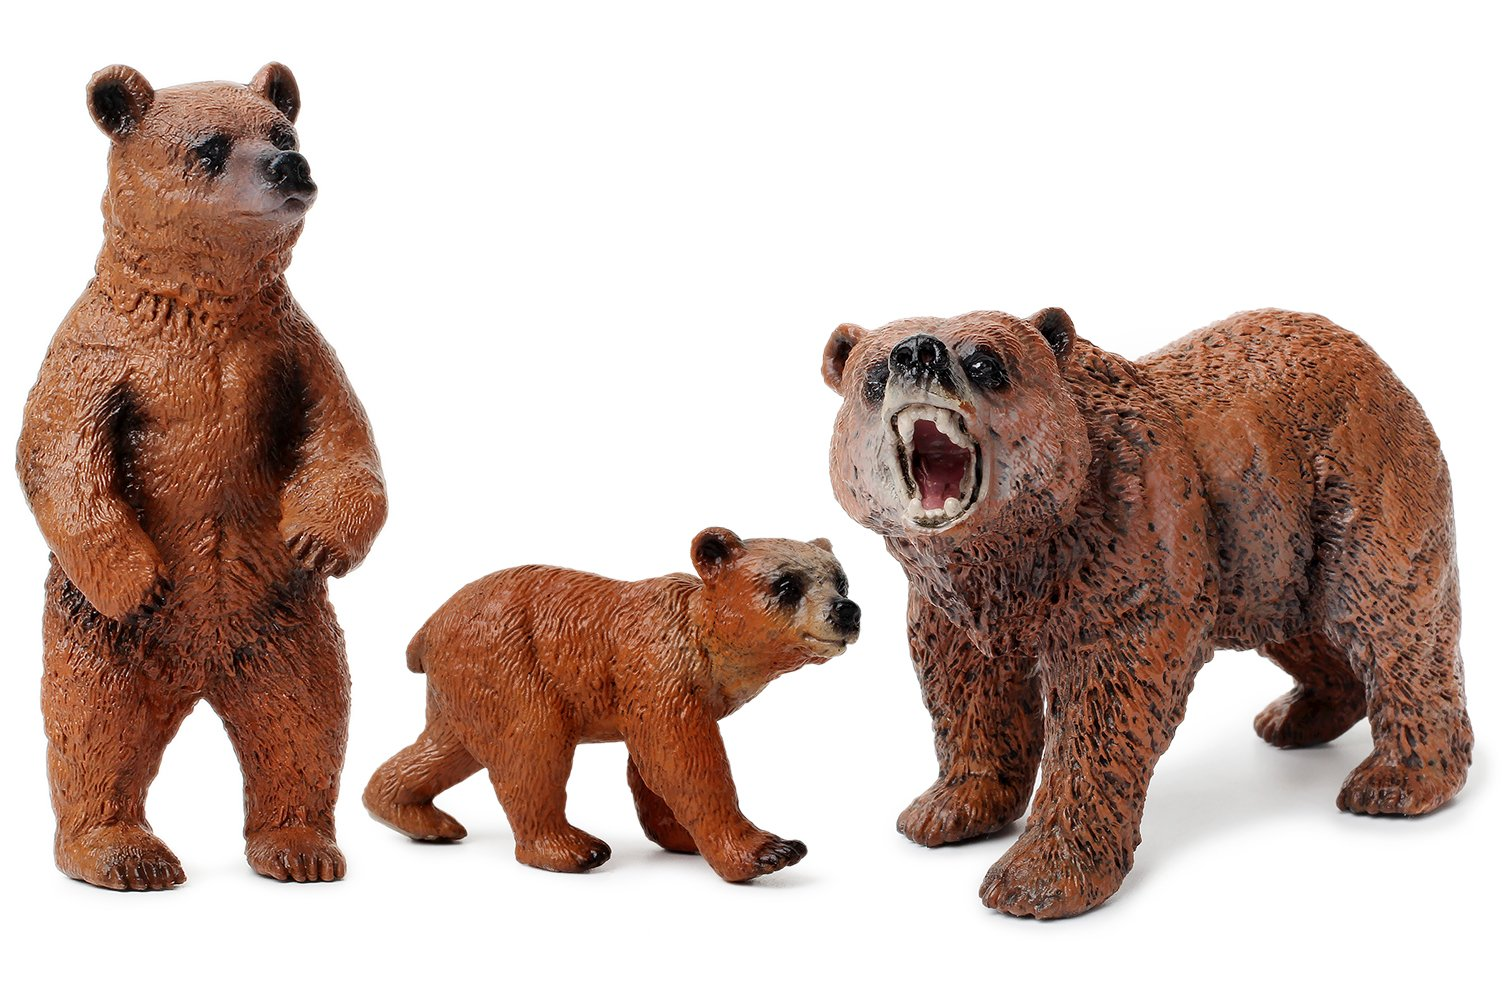 UANDME Miniature Grizzly Bear Toy Figurines, Set of 3 Bear Figures, North American Wildlife Grizzlies Male, Female and Cub (Set) by UANDME (Image #1)